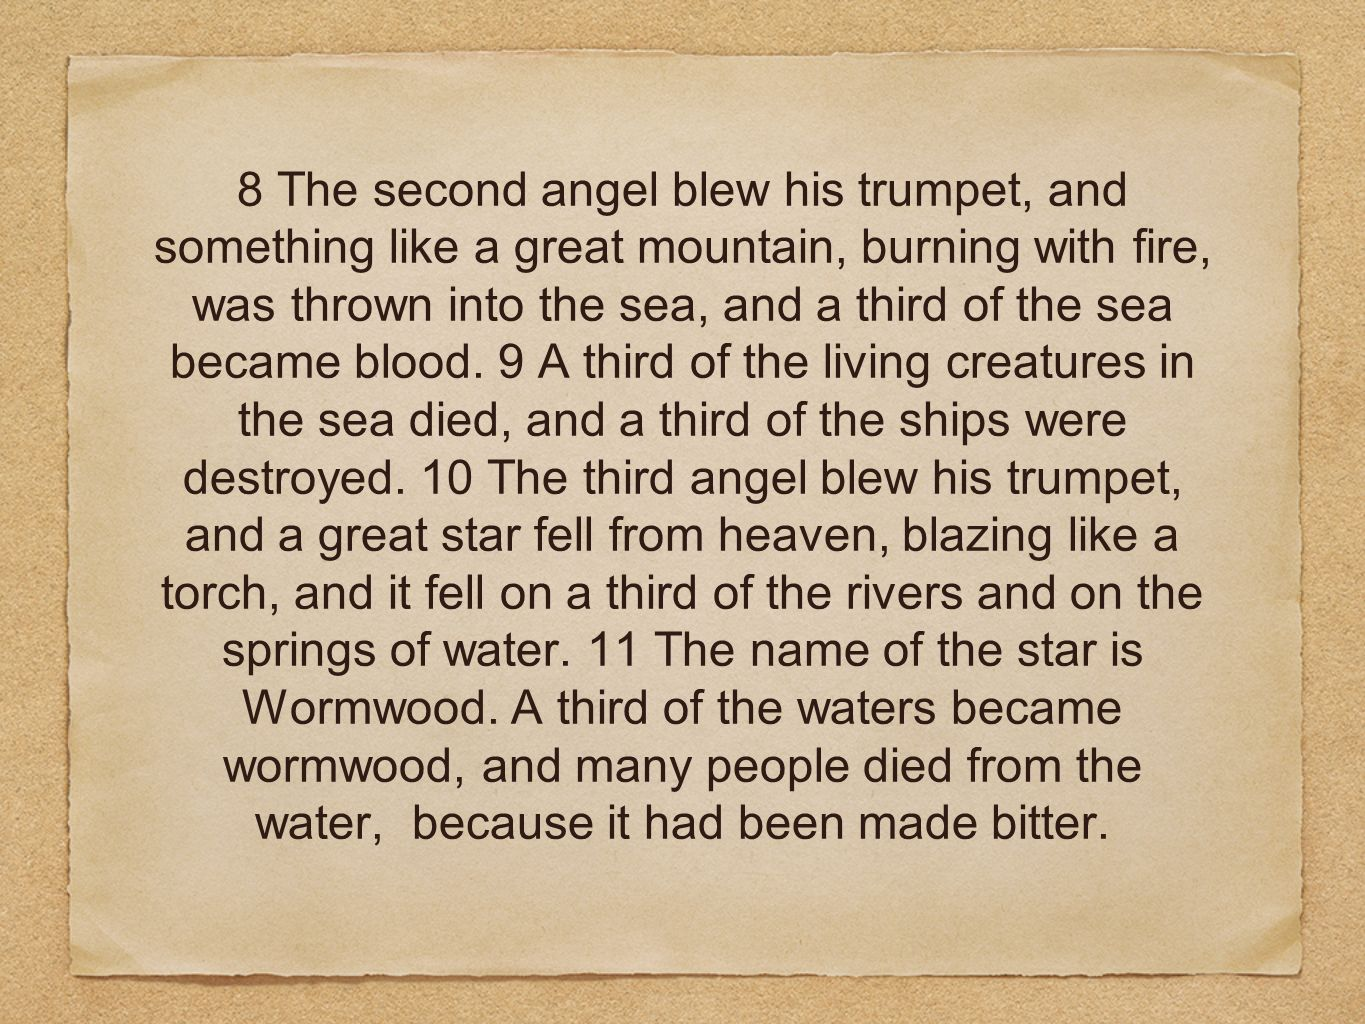 8 The second angel blew his trumpet, and something like a great mountain, burning with fire, was thrown into the sea, and a third of the sea became blood.